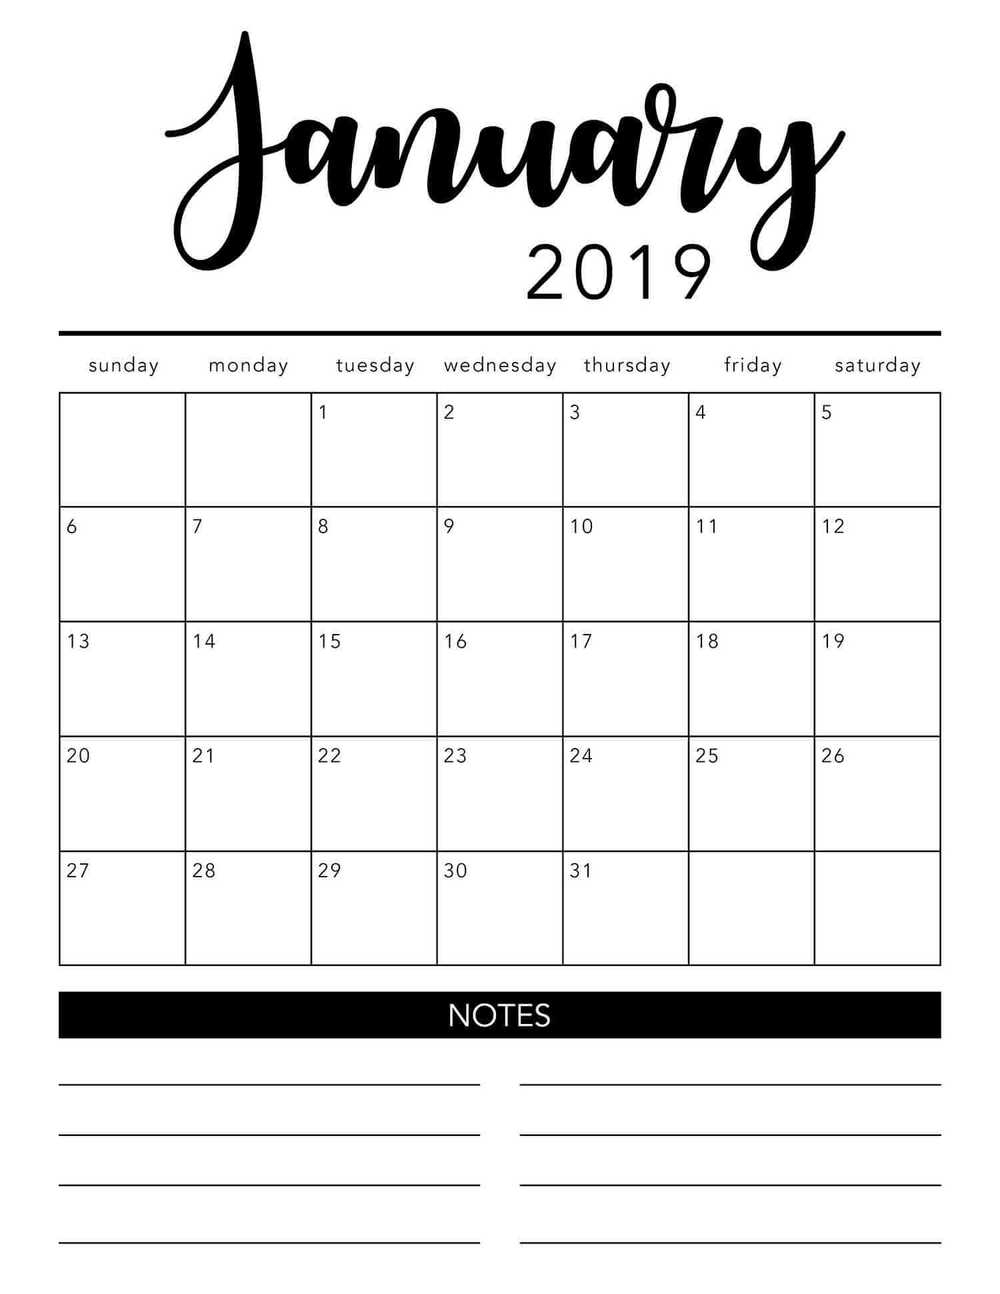 Free 2019 Printable Calendar Template (2 Colors!) - I Heart Naptime with regard to Month By Month Prontable Calender